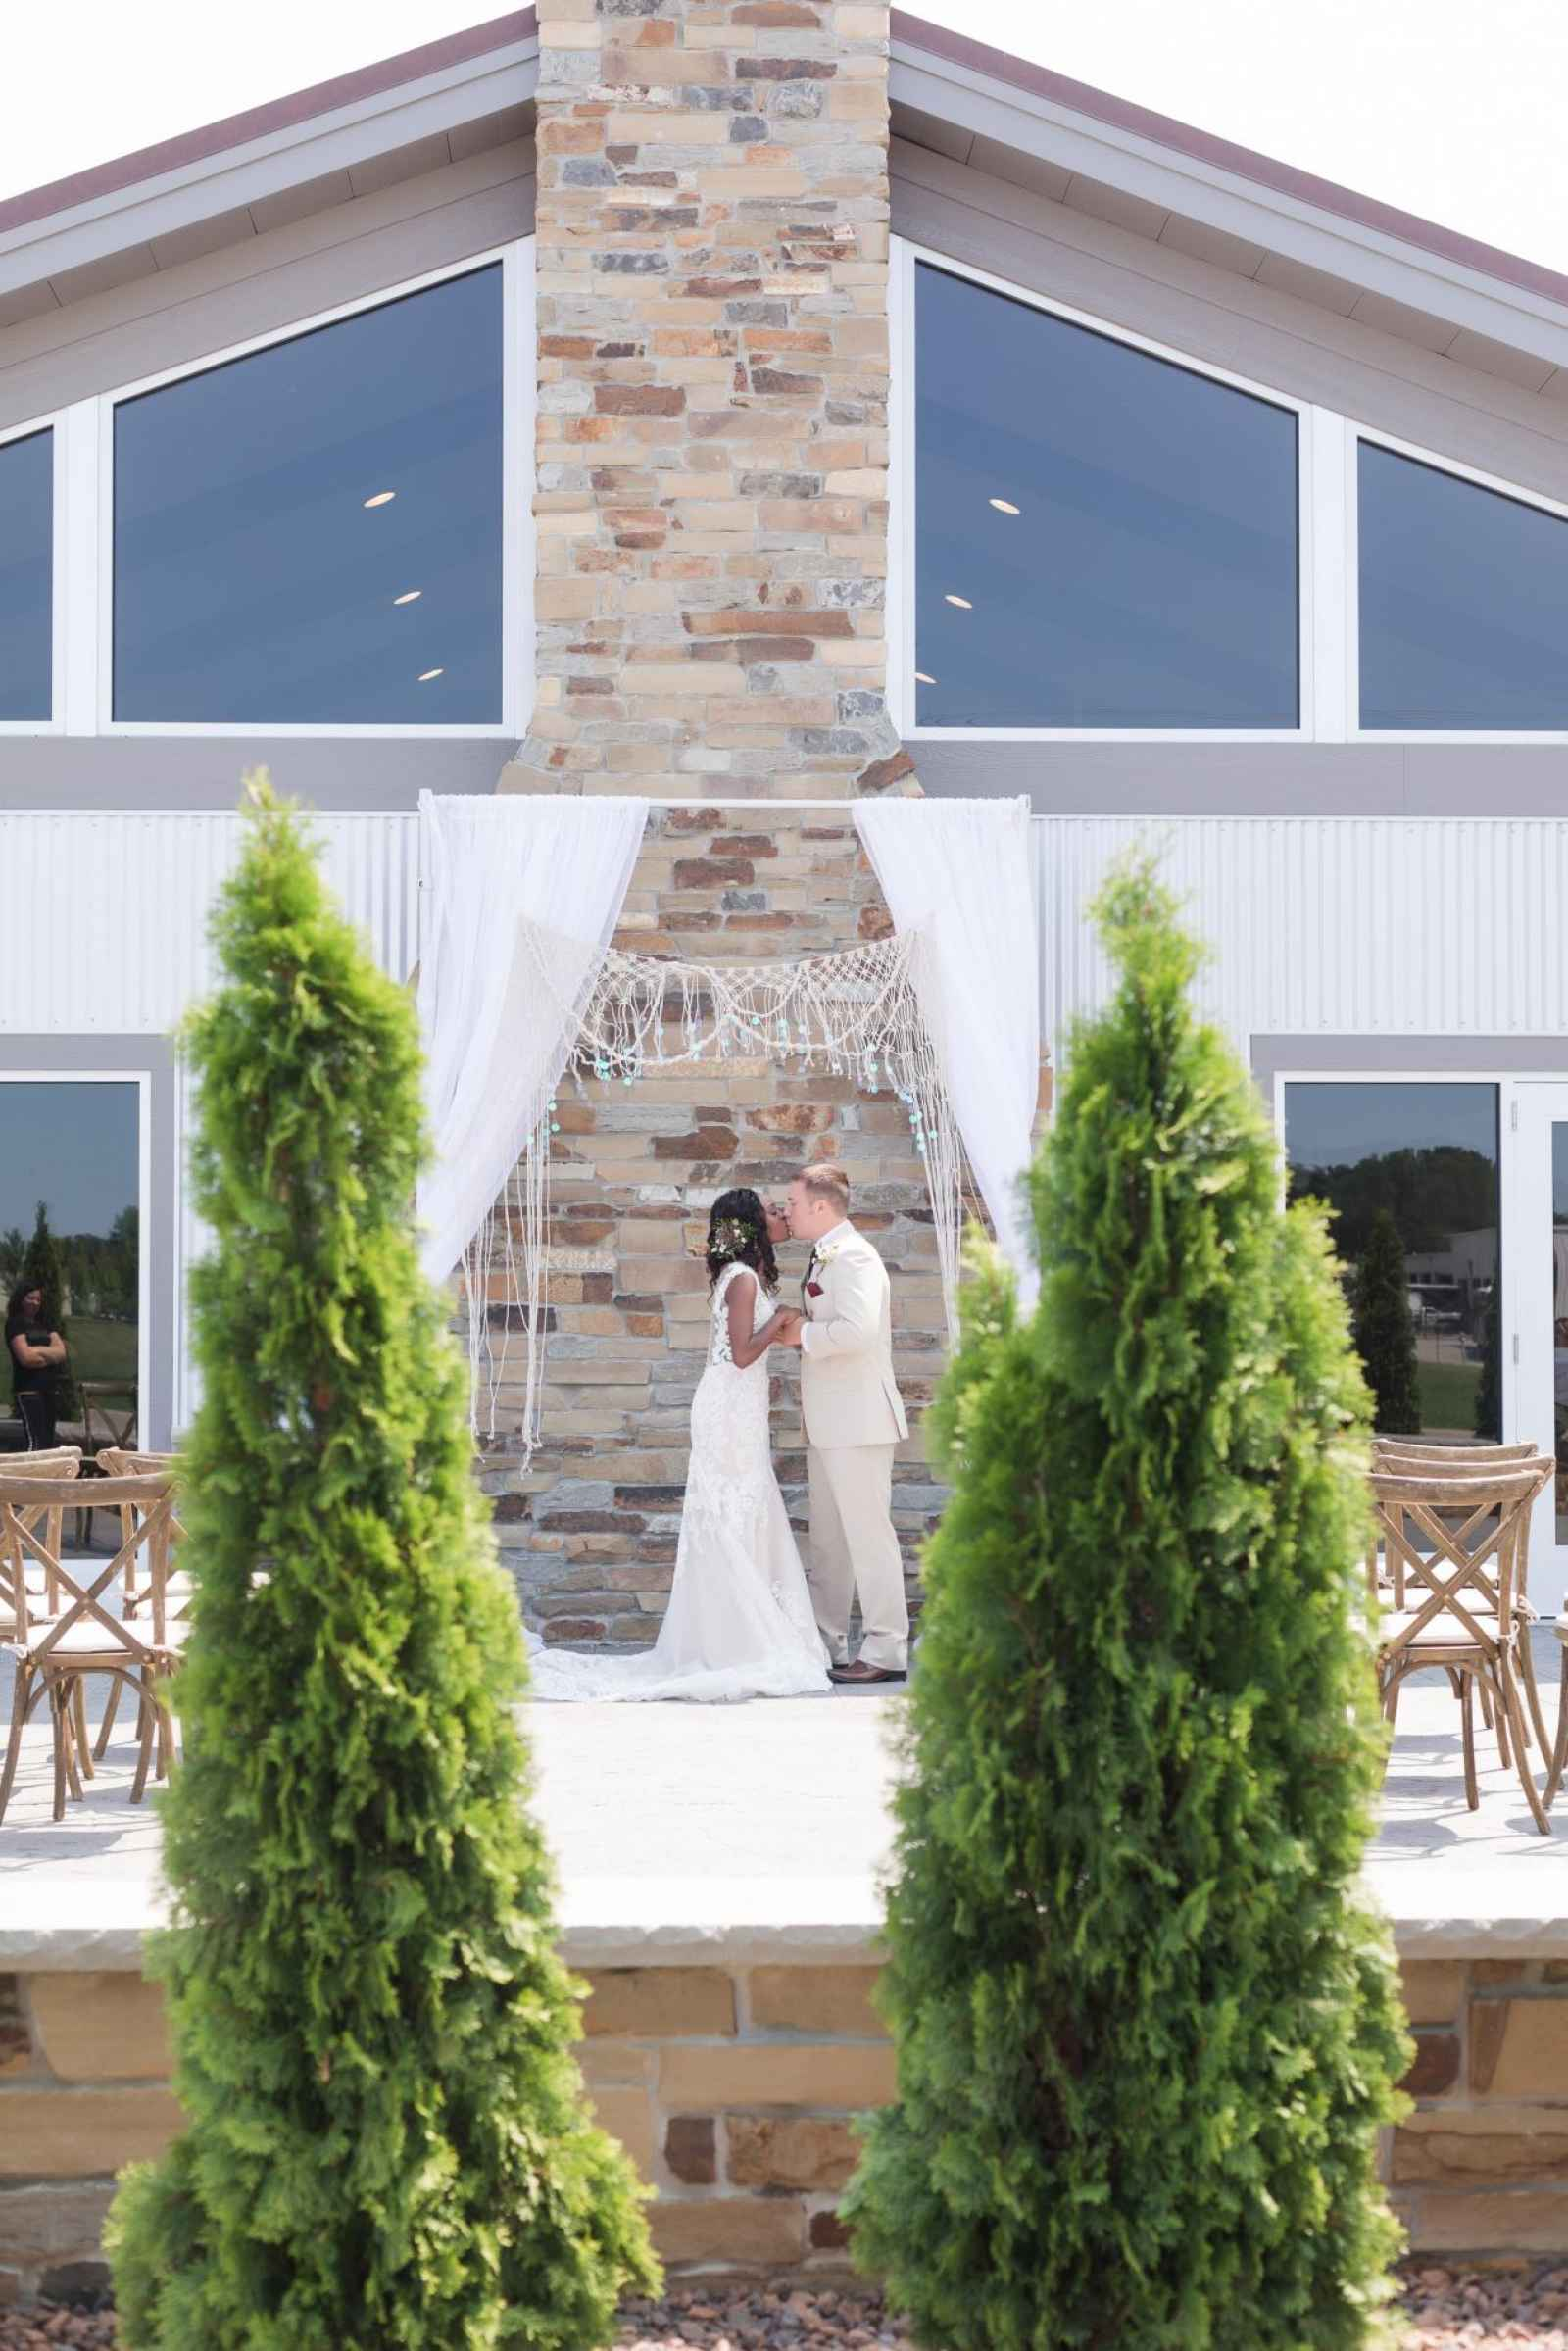 Rustic Imagination A Weddingday Exclusive Style Shoot At The Blue Teal In Wakarusa Indiana